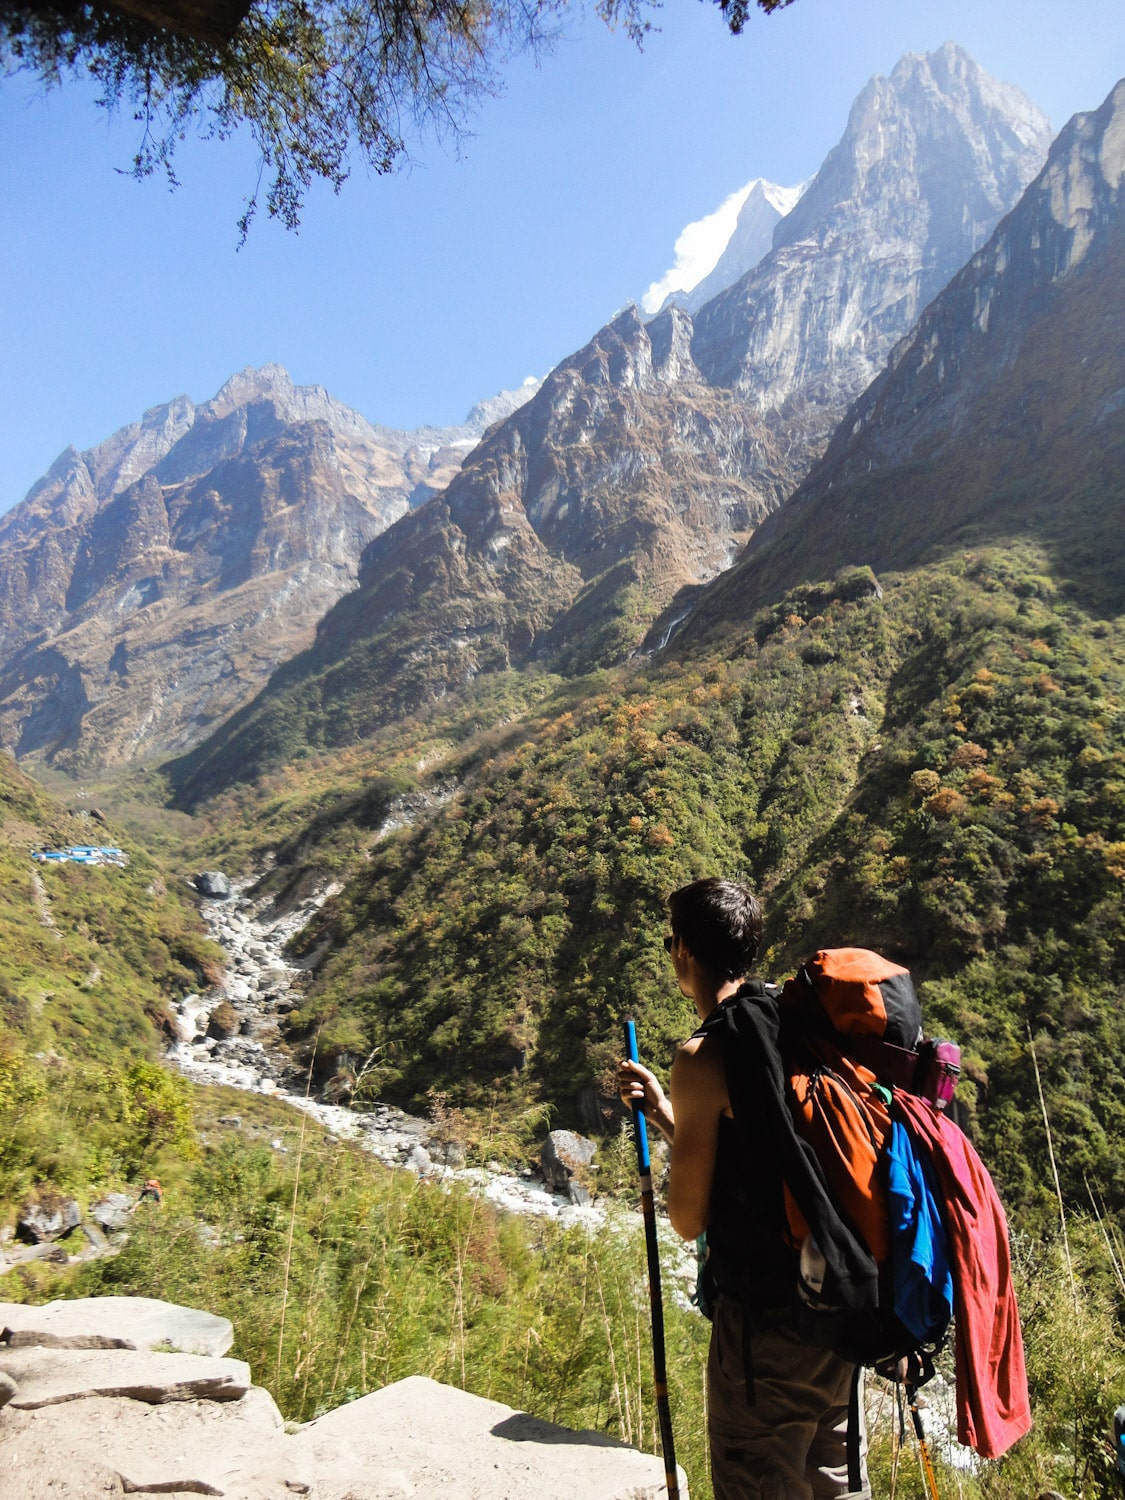 Hinku Cave - 10 Days Annapurna Base Camp Trekking Itinerary | Bucketlist Bri